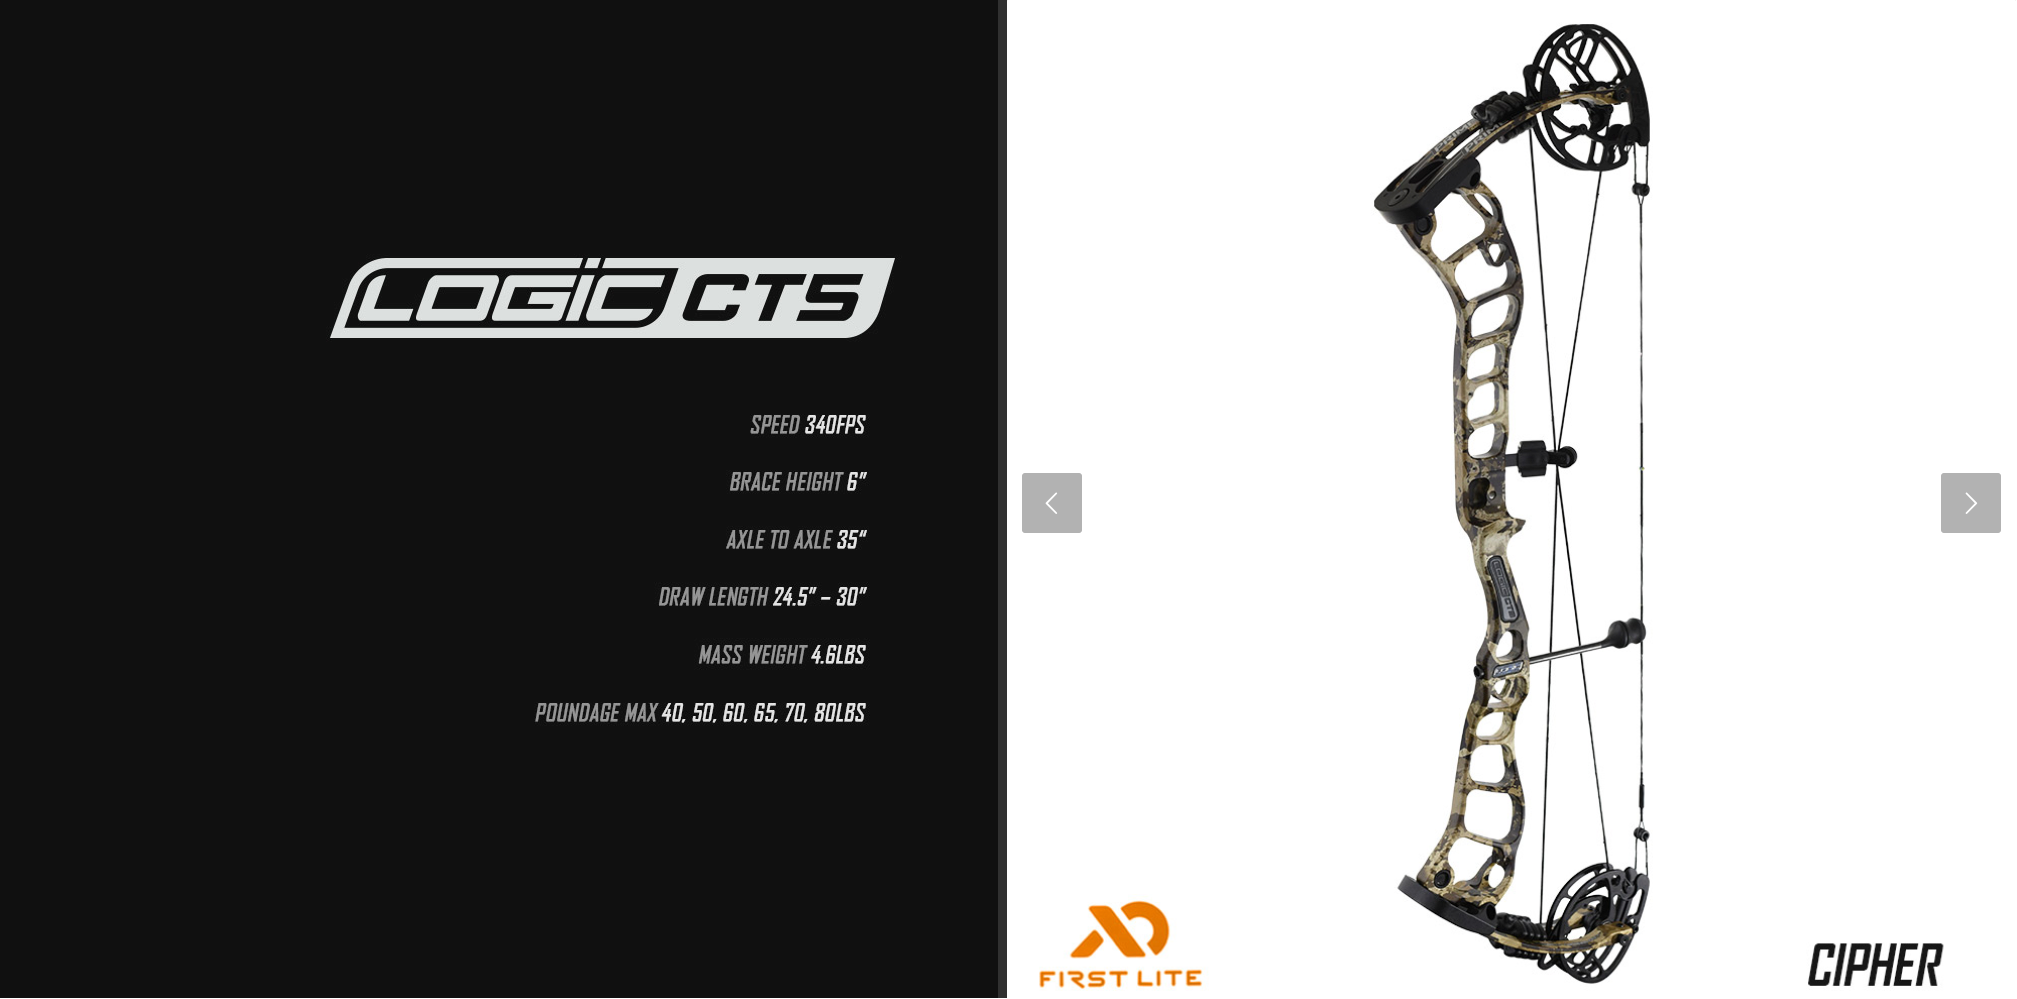 2019 G5 PrimeArchery Logic CT5 Specs